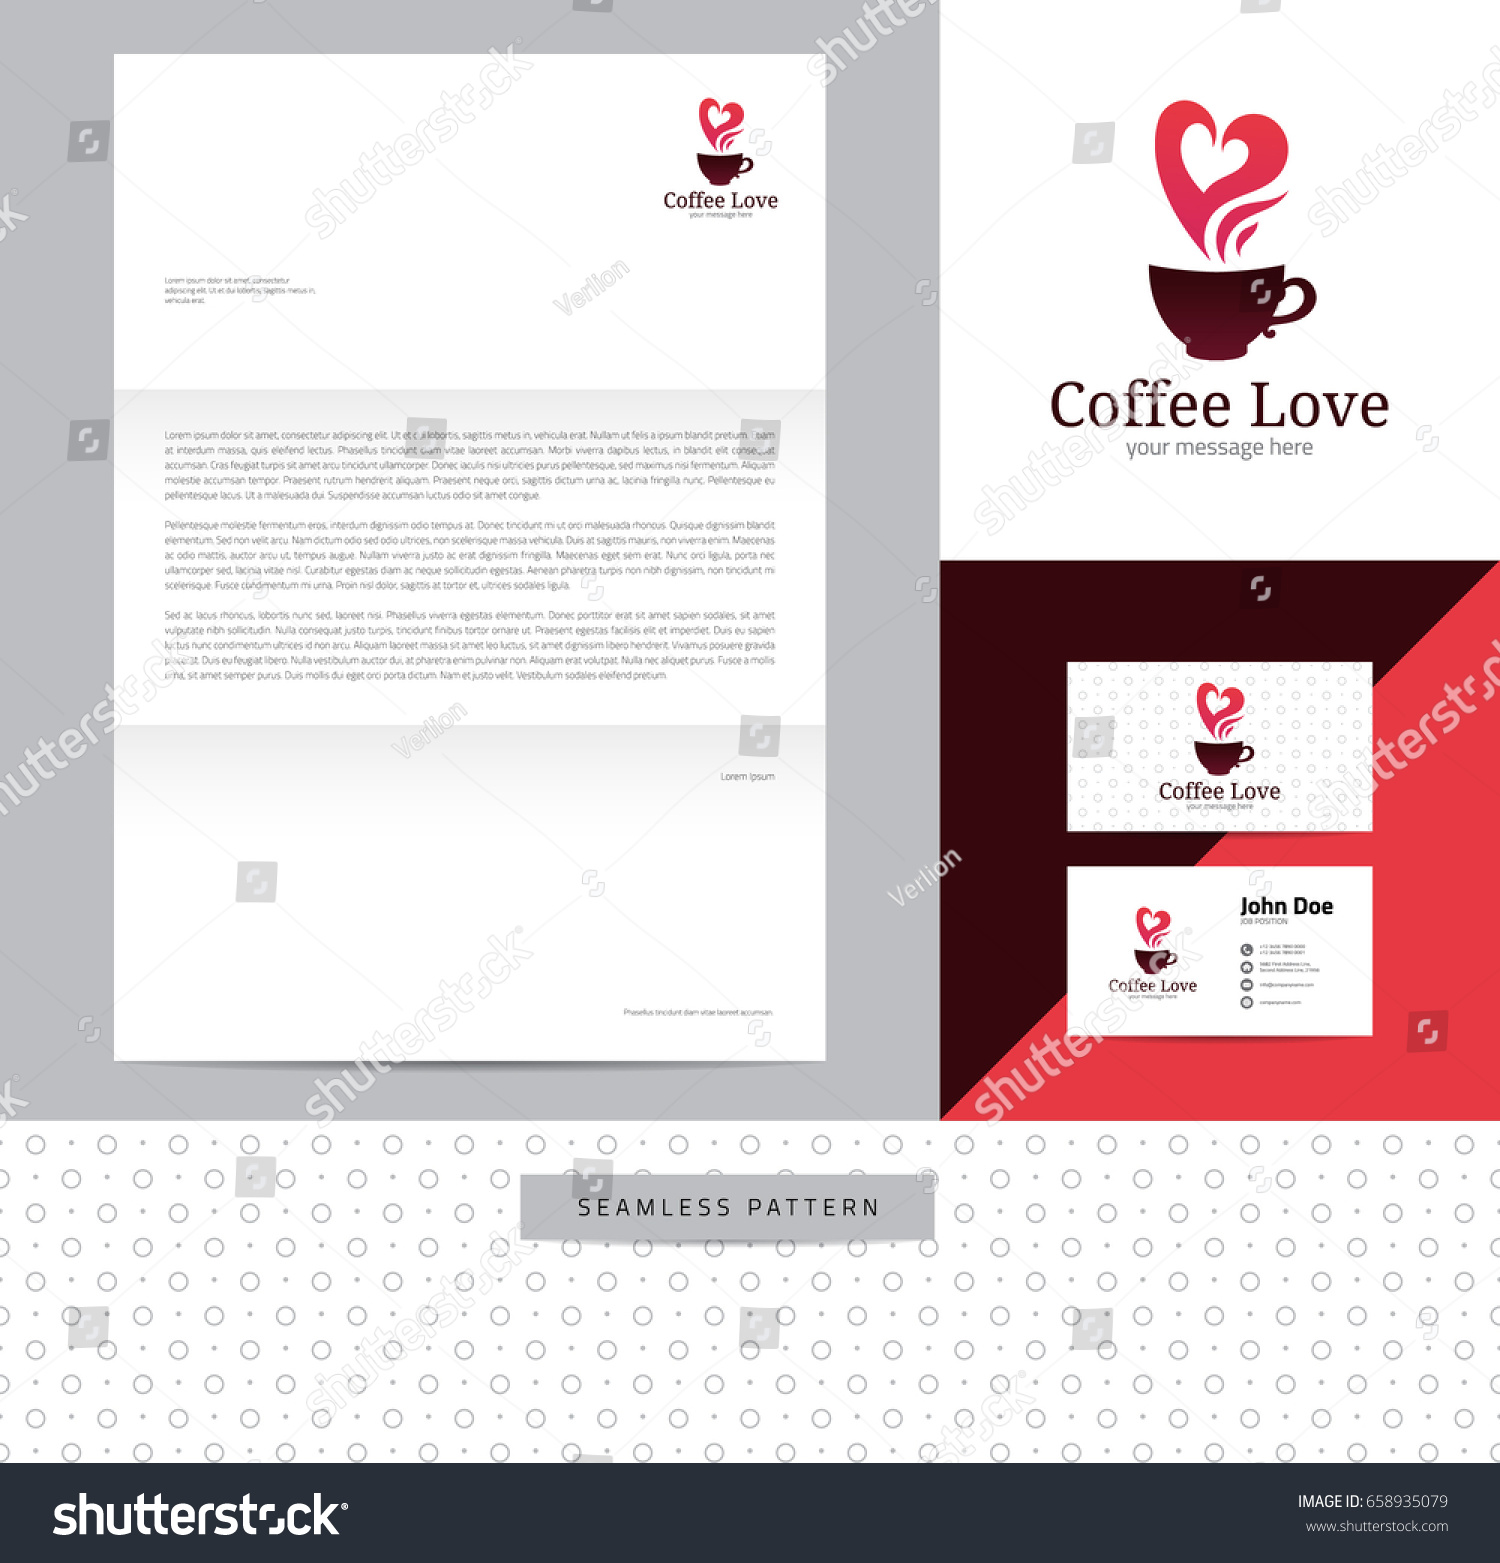 Cup hot coffee heart shaped steam stock vector 658935079 shutterstock cup of hot coffee with heart shaped steam identity design consisting of logo business card colourmoves